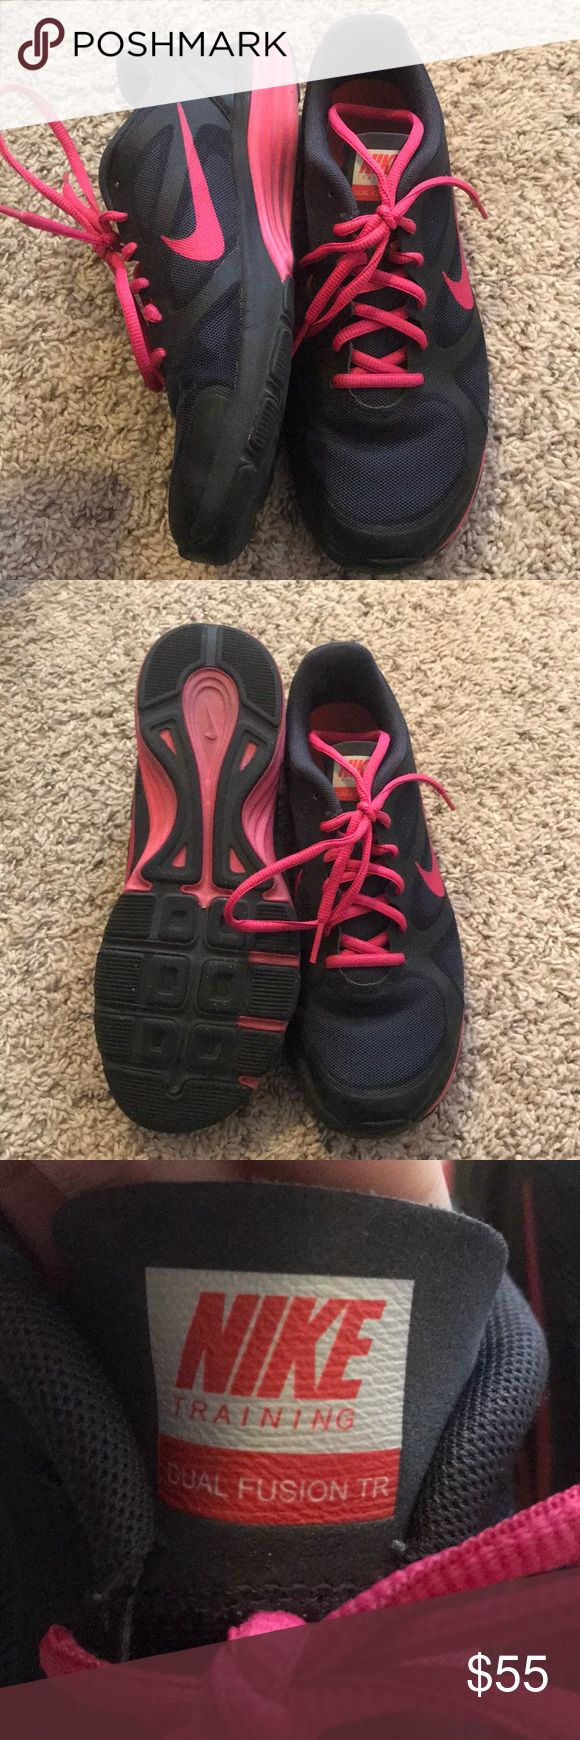 Nike dual fusion training shoes size 7.5 Pink and black nike dual fusion training shoes worn a couple times but in brand new condition Nike Shoes Athletic Shoes